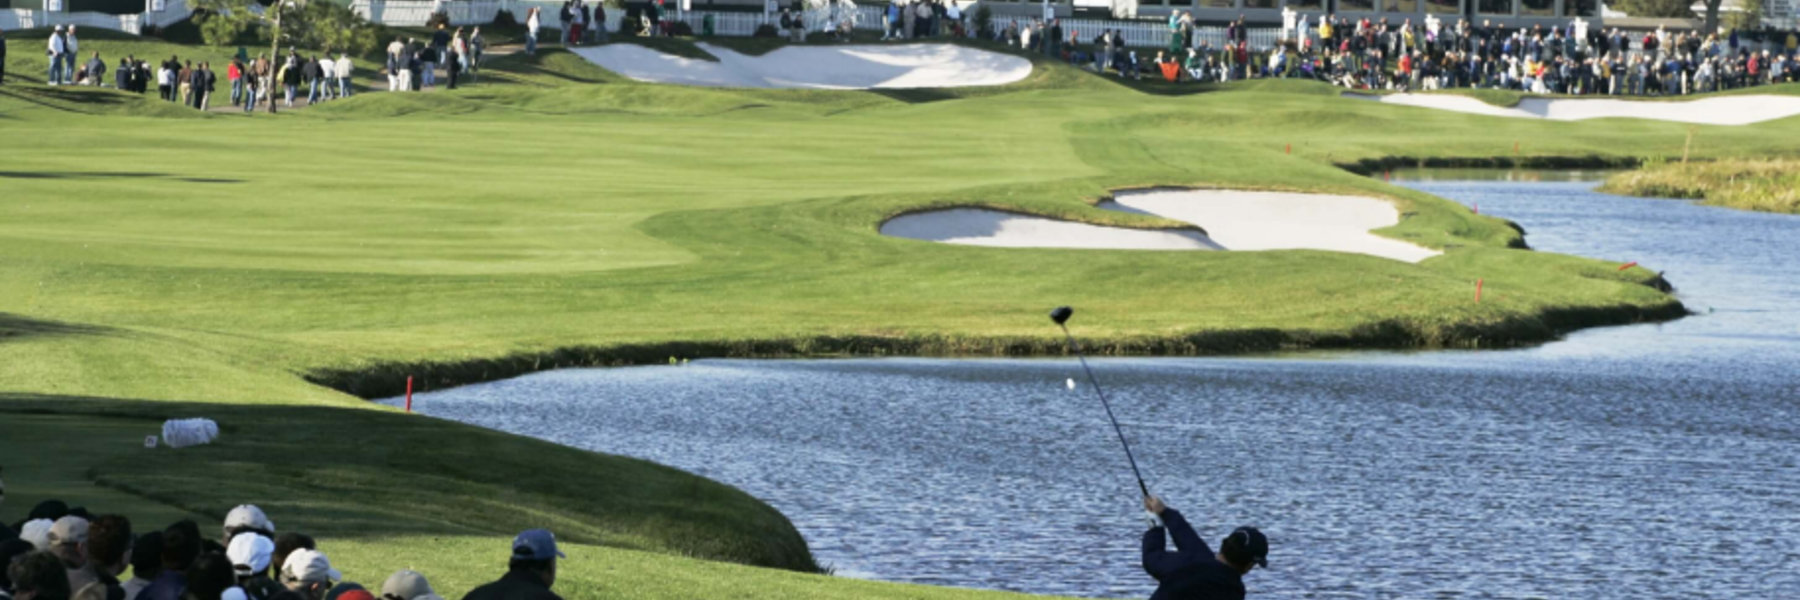 Golf Vacation Package - Tampa Resort Summer Deal for only $164 per day!